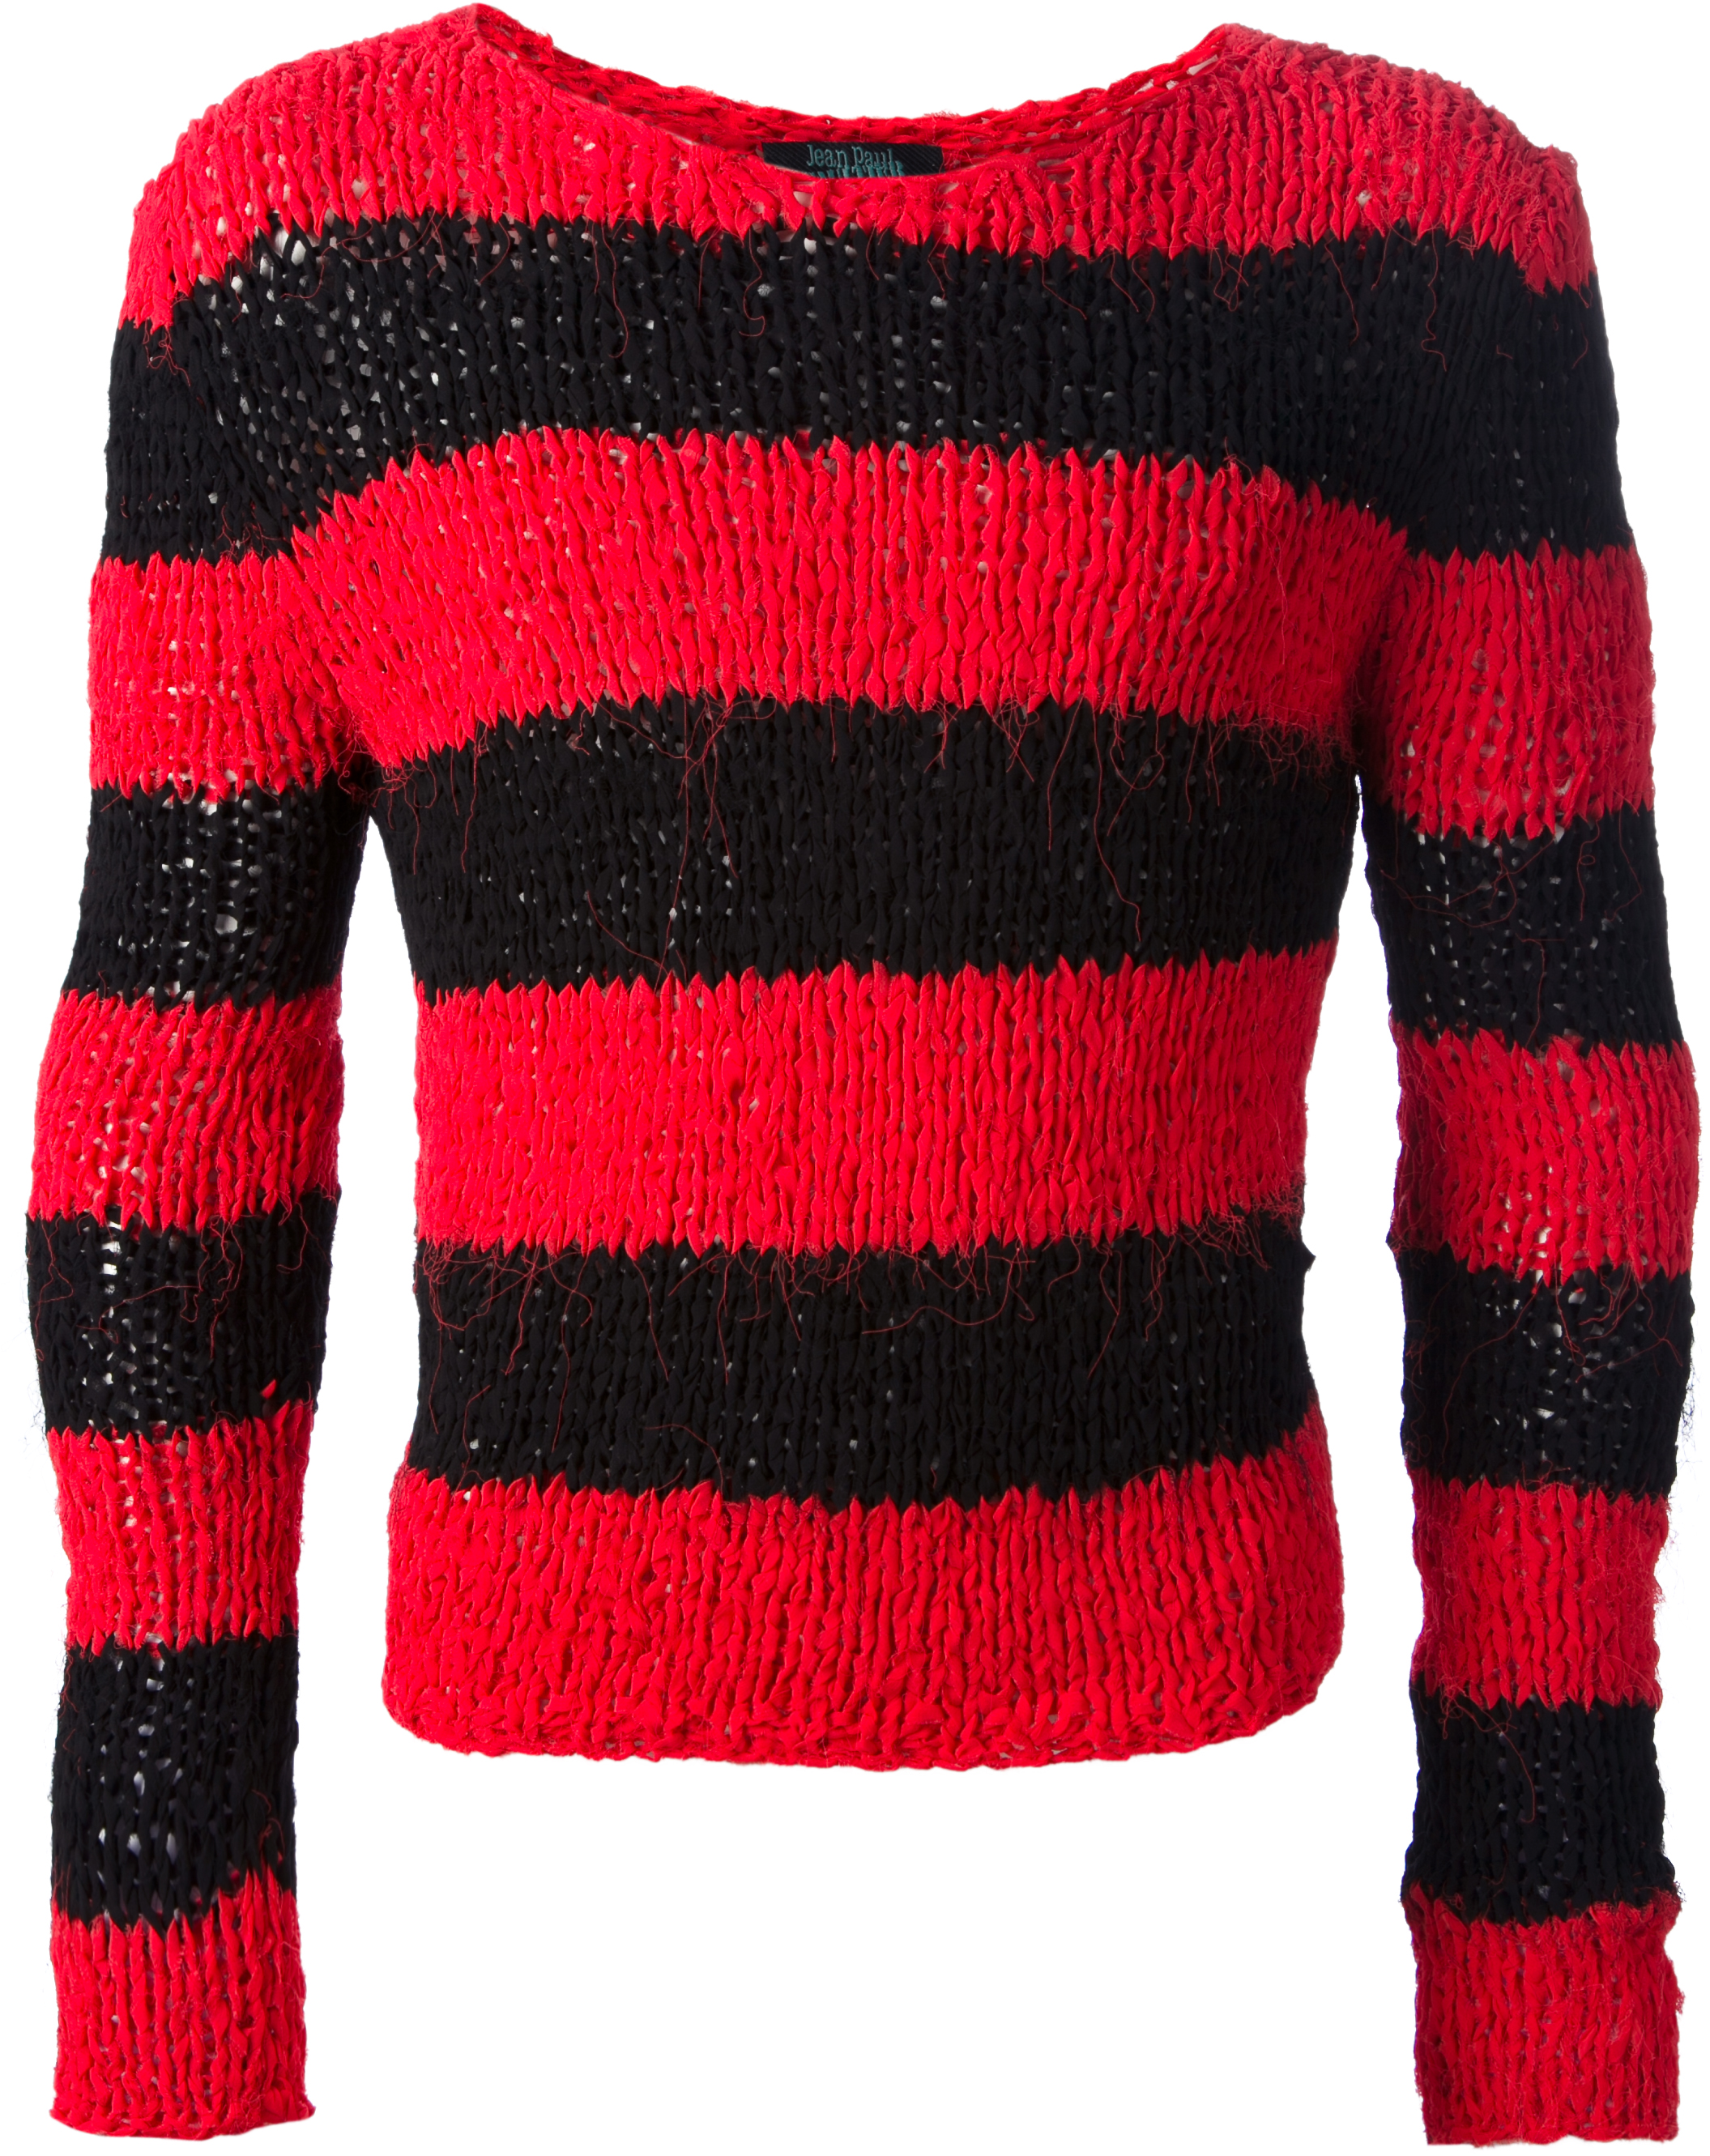 Jean Paul Gaultier red striped knit jumper from FW93 collection, Les Vikings